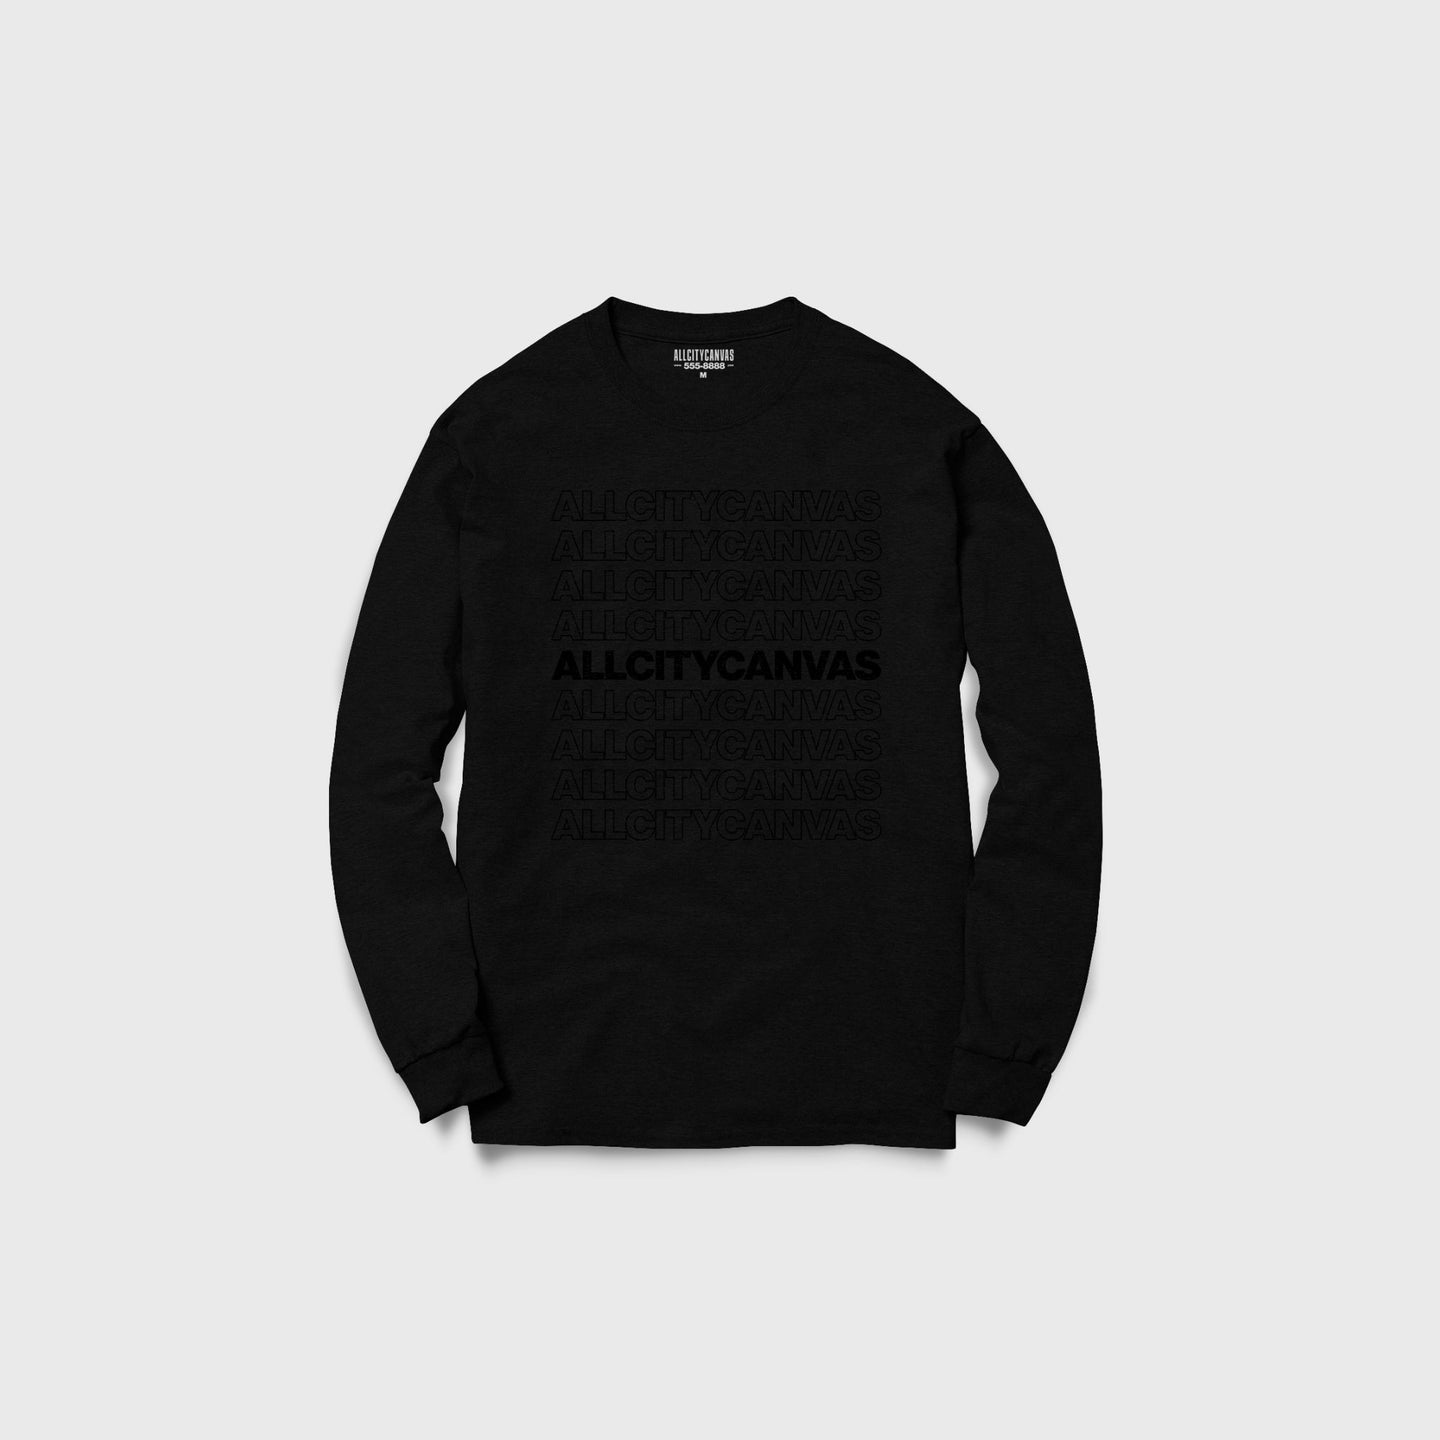 THANK YOU - Black/Black Sweatshirt